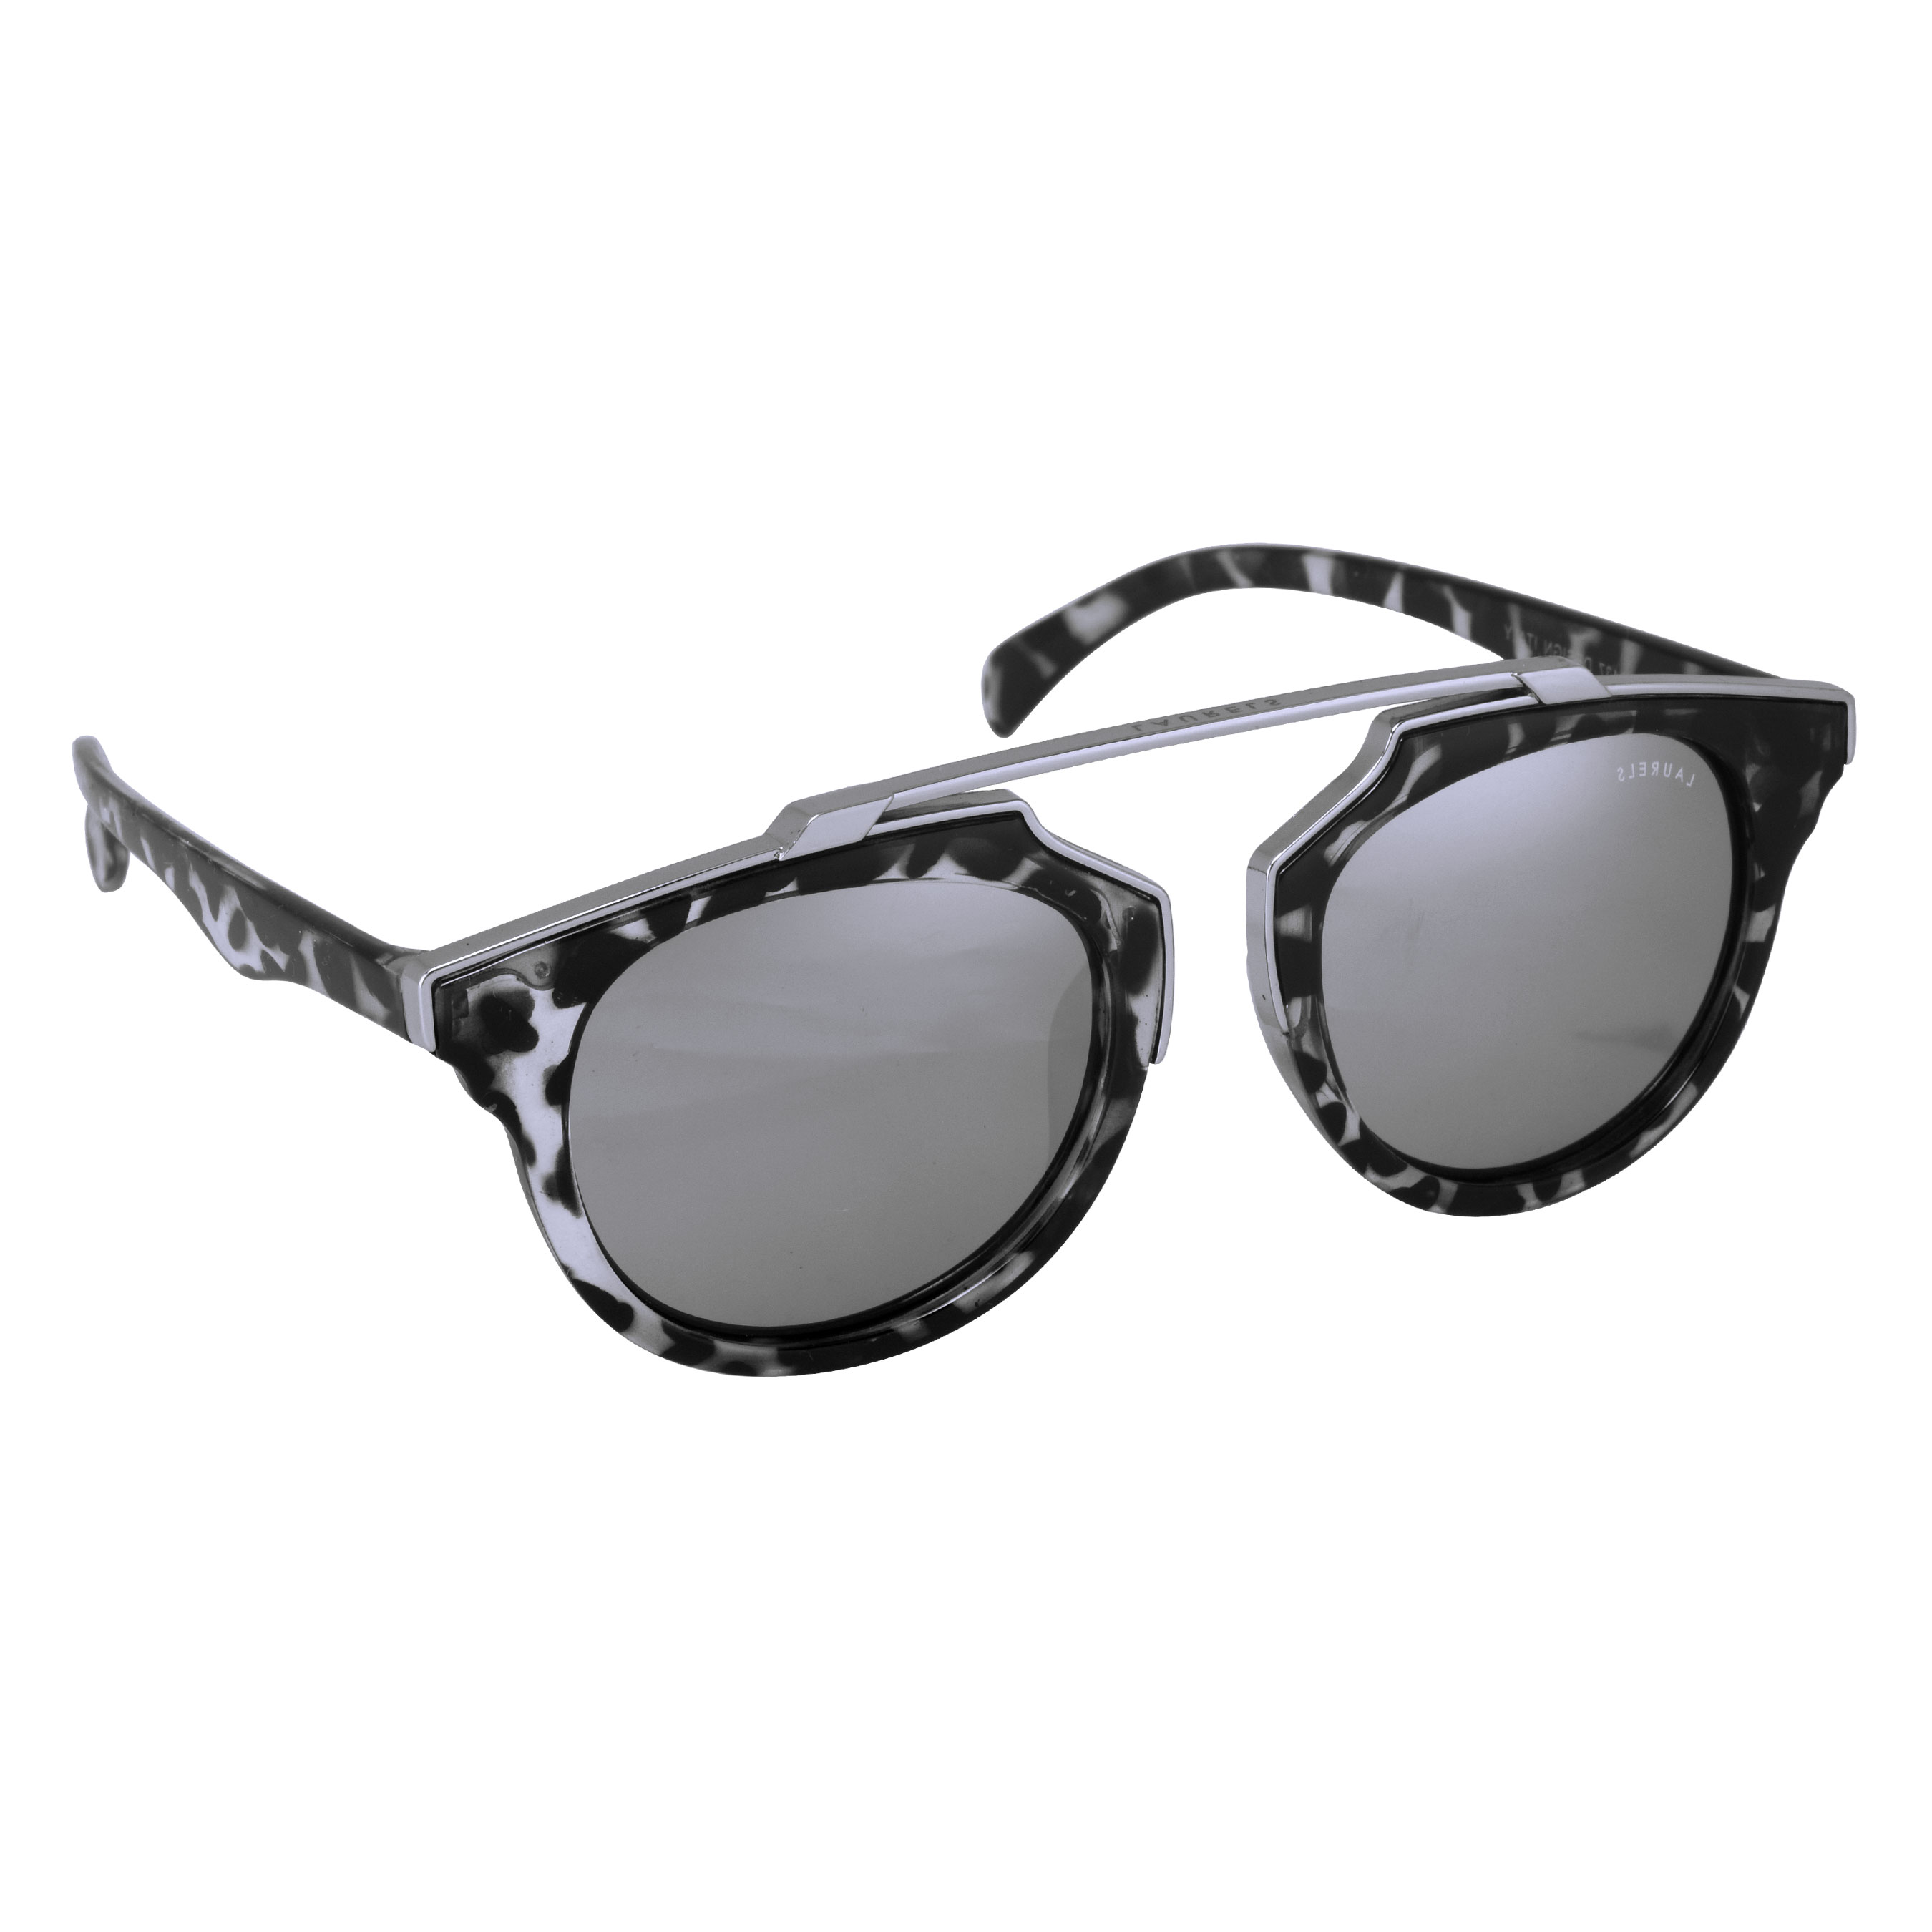 Laurels Black Polycarbonate Rectangular Frames Sunglass For Men